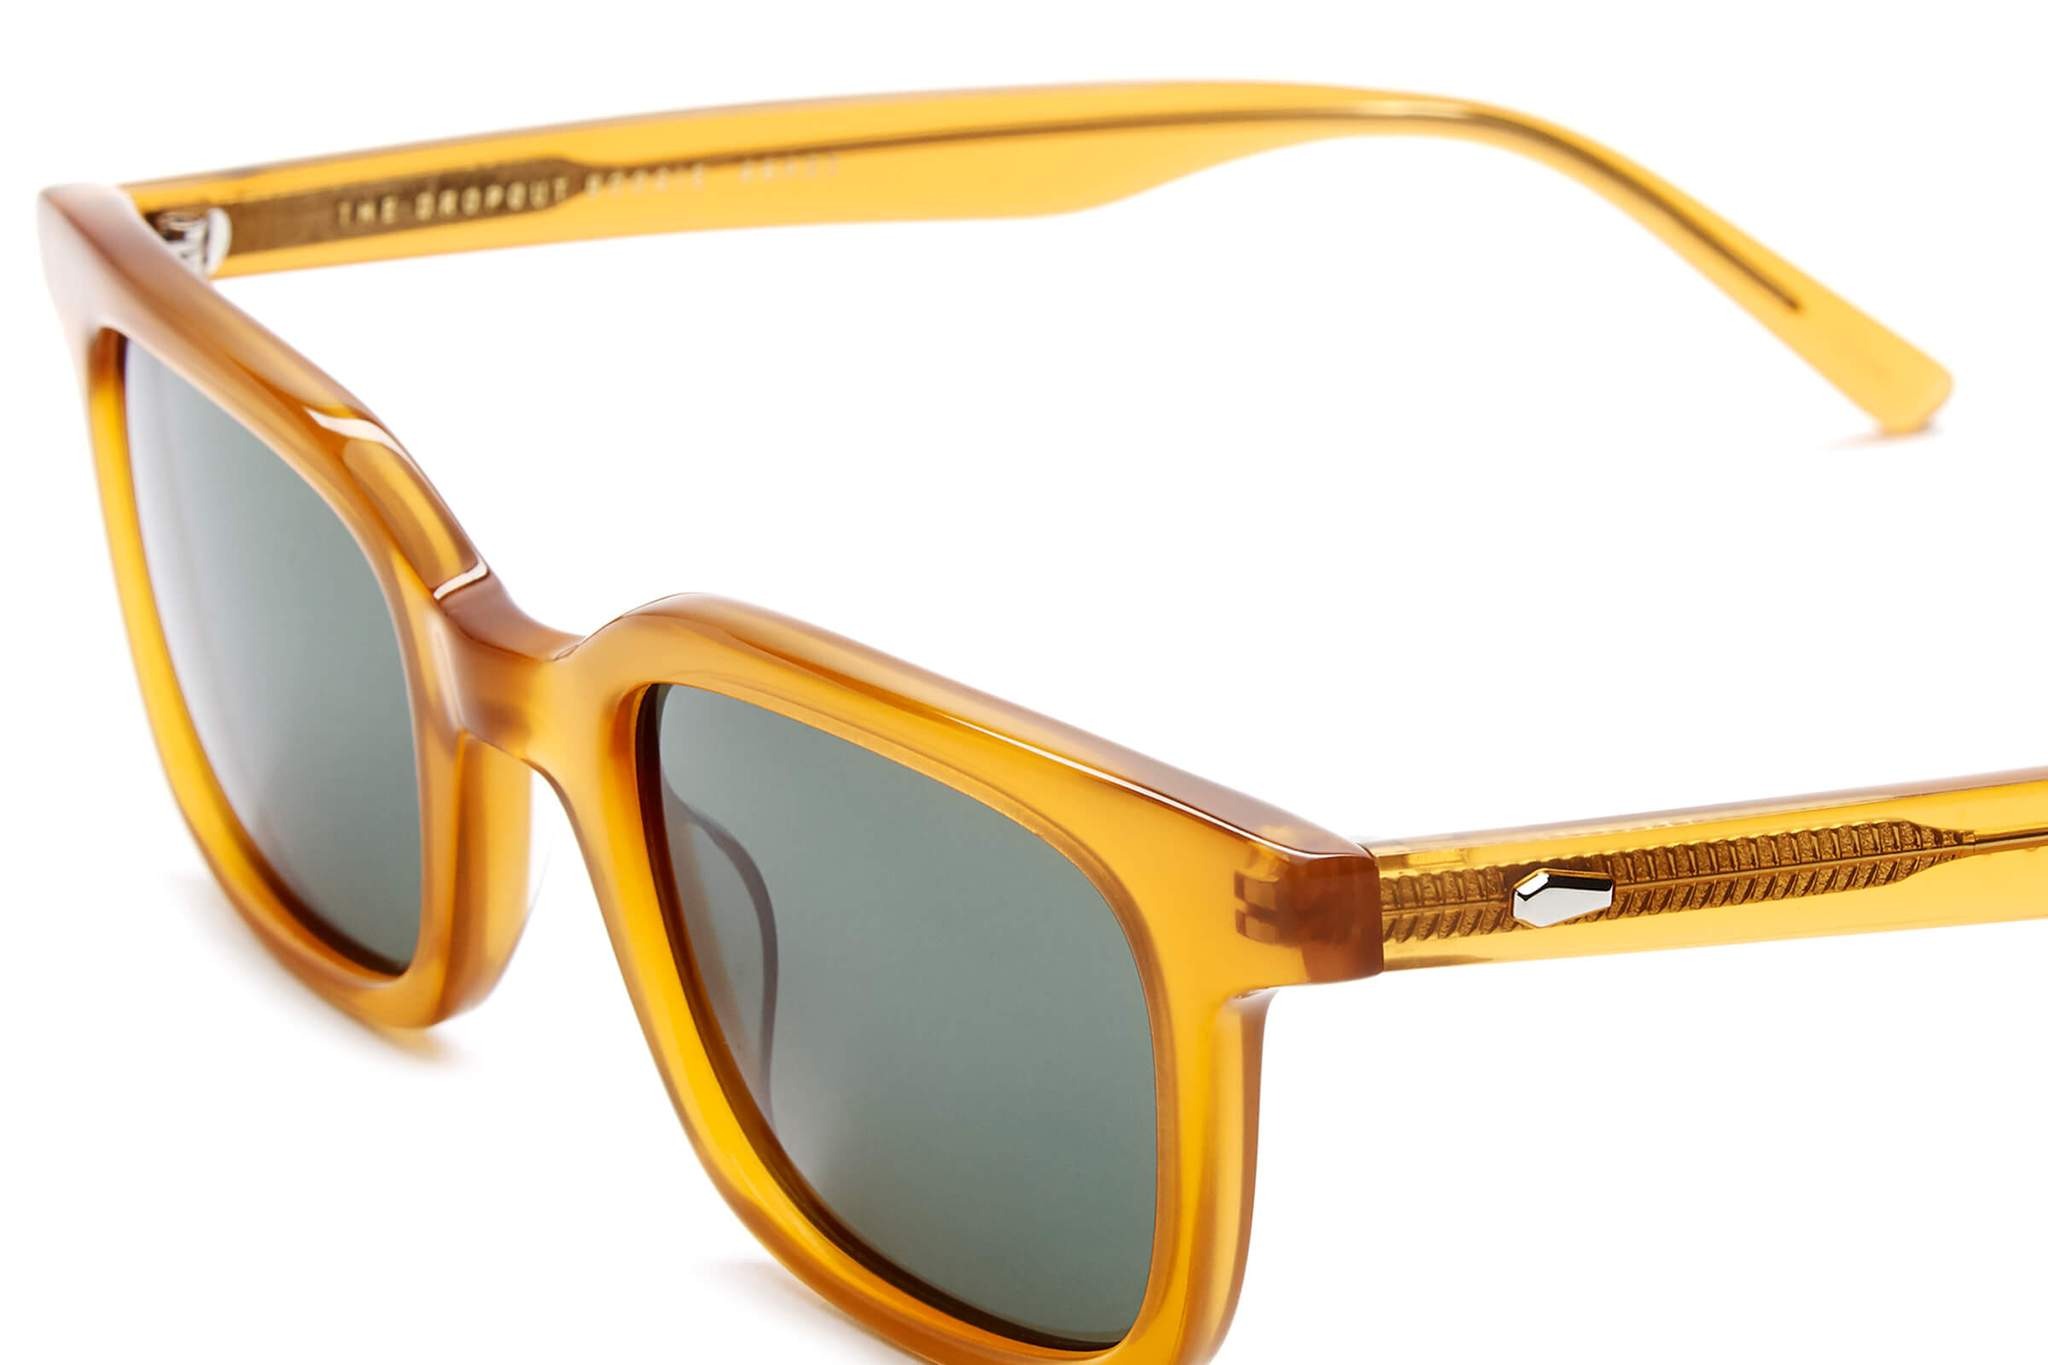 THE DROPOUT BOOGIE / CARAMEL BIO & POLARISED G15 LENS